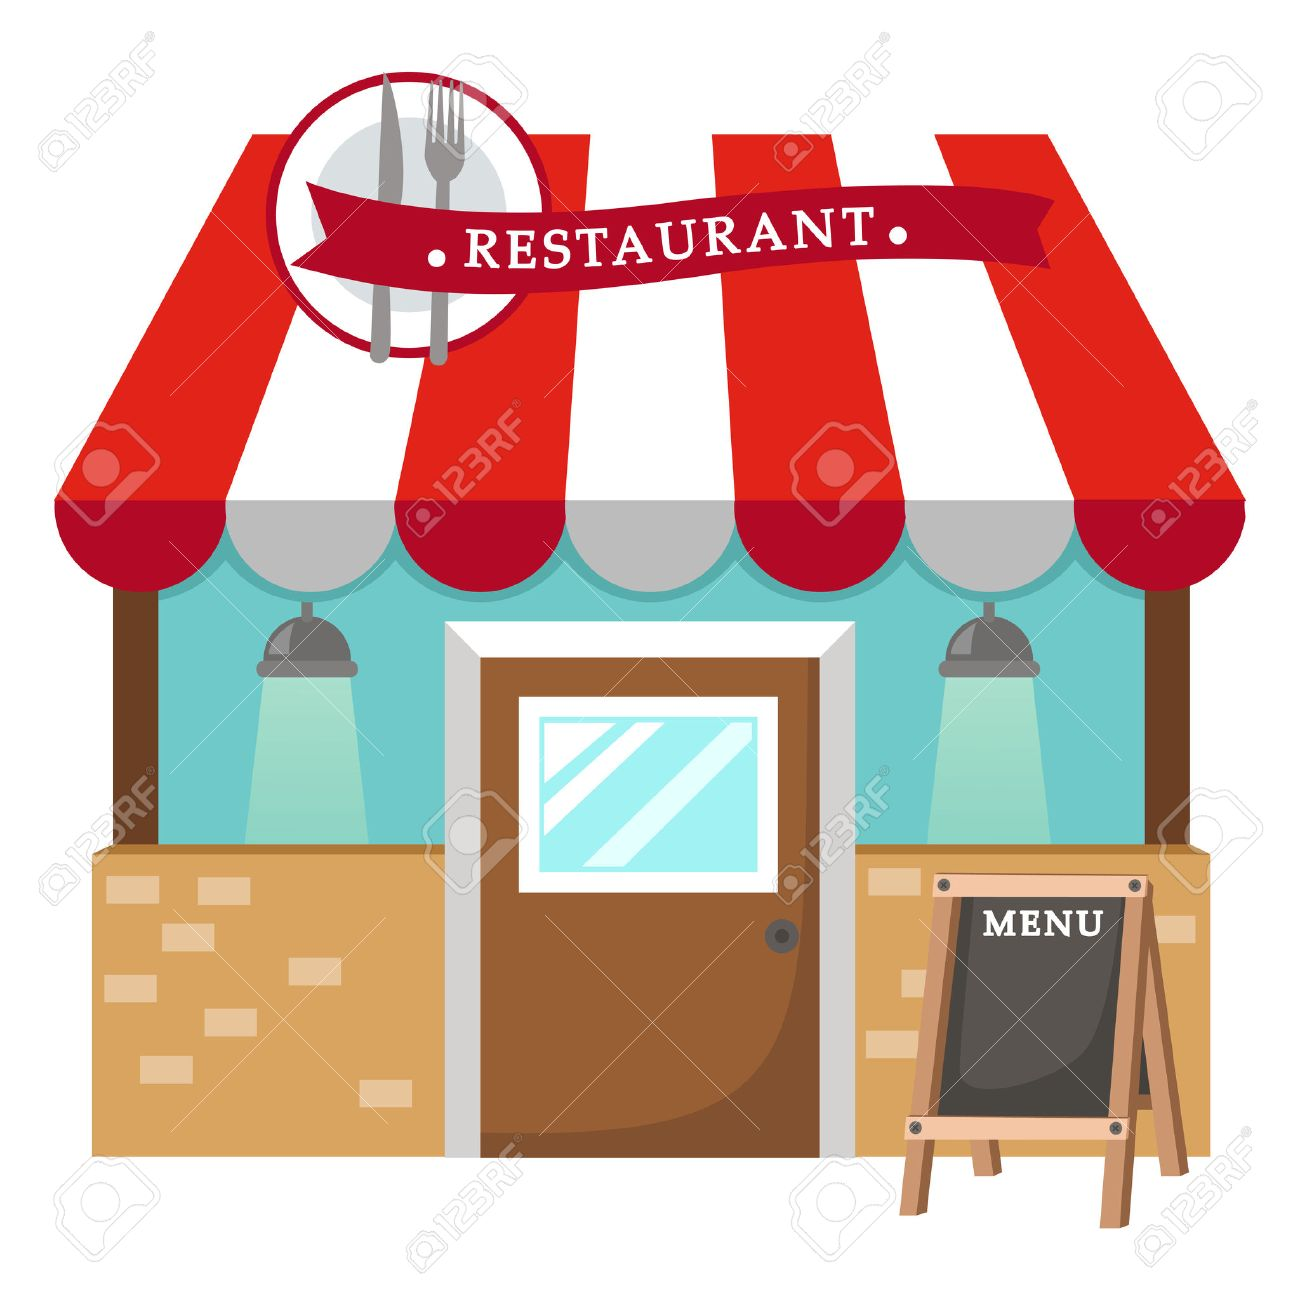 illustration of isolated restaurant vector royalty free cliparts rh 123rf com free restaurant clipart images restaurant clipart images